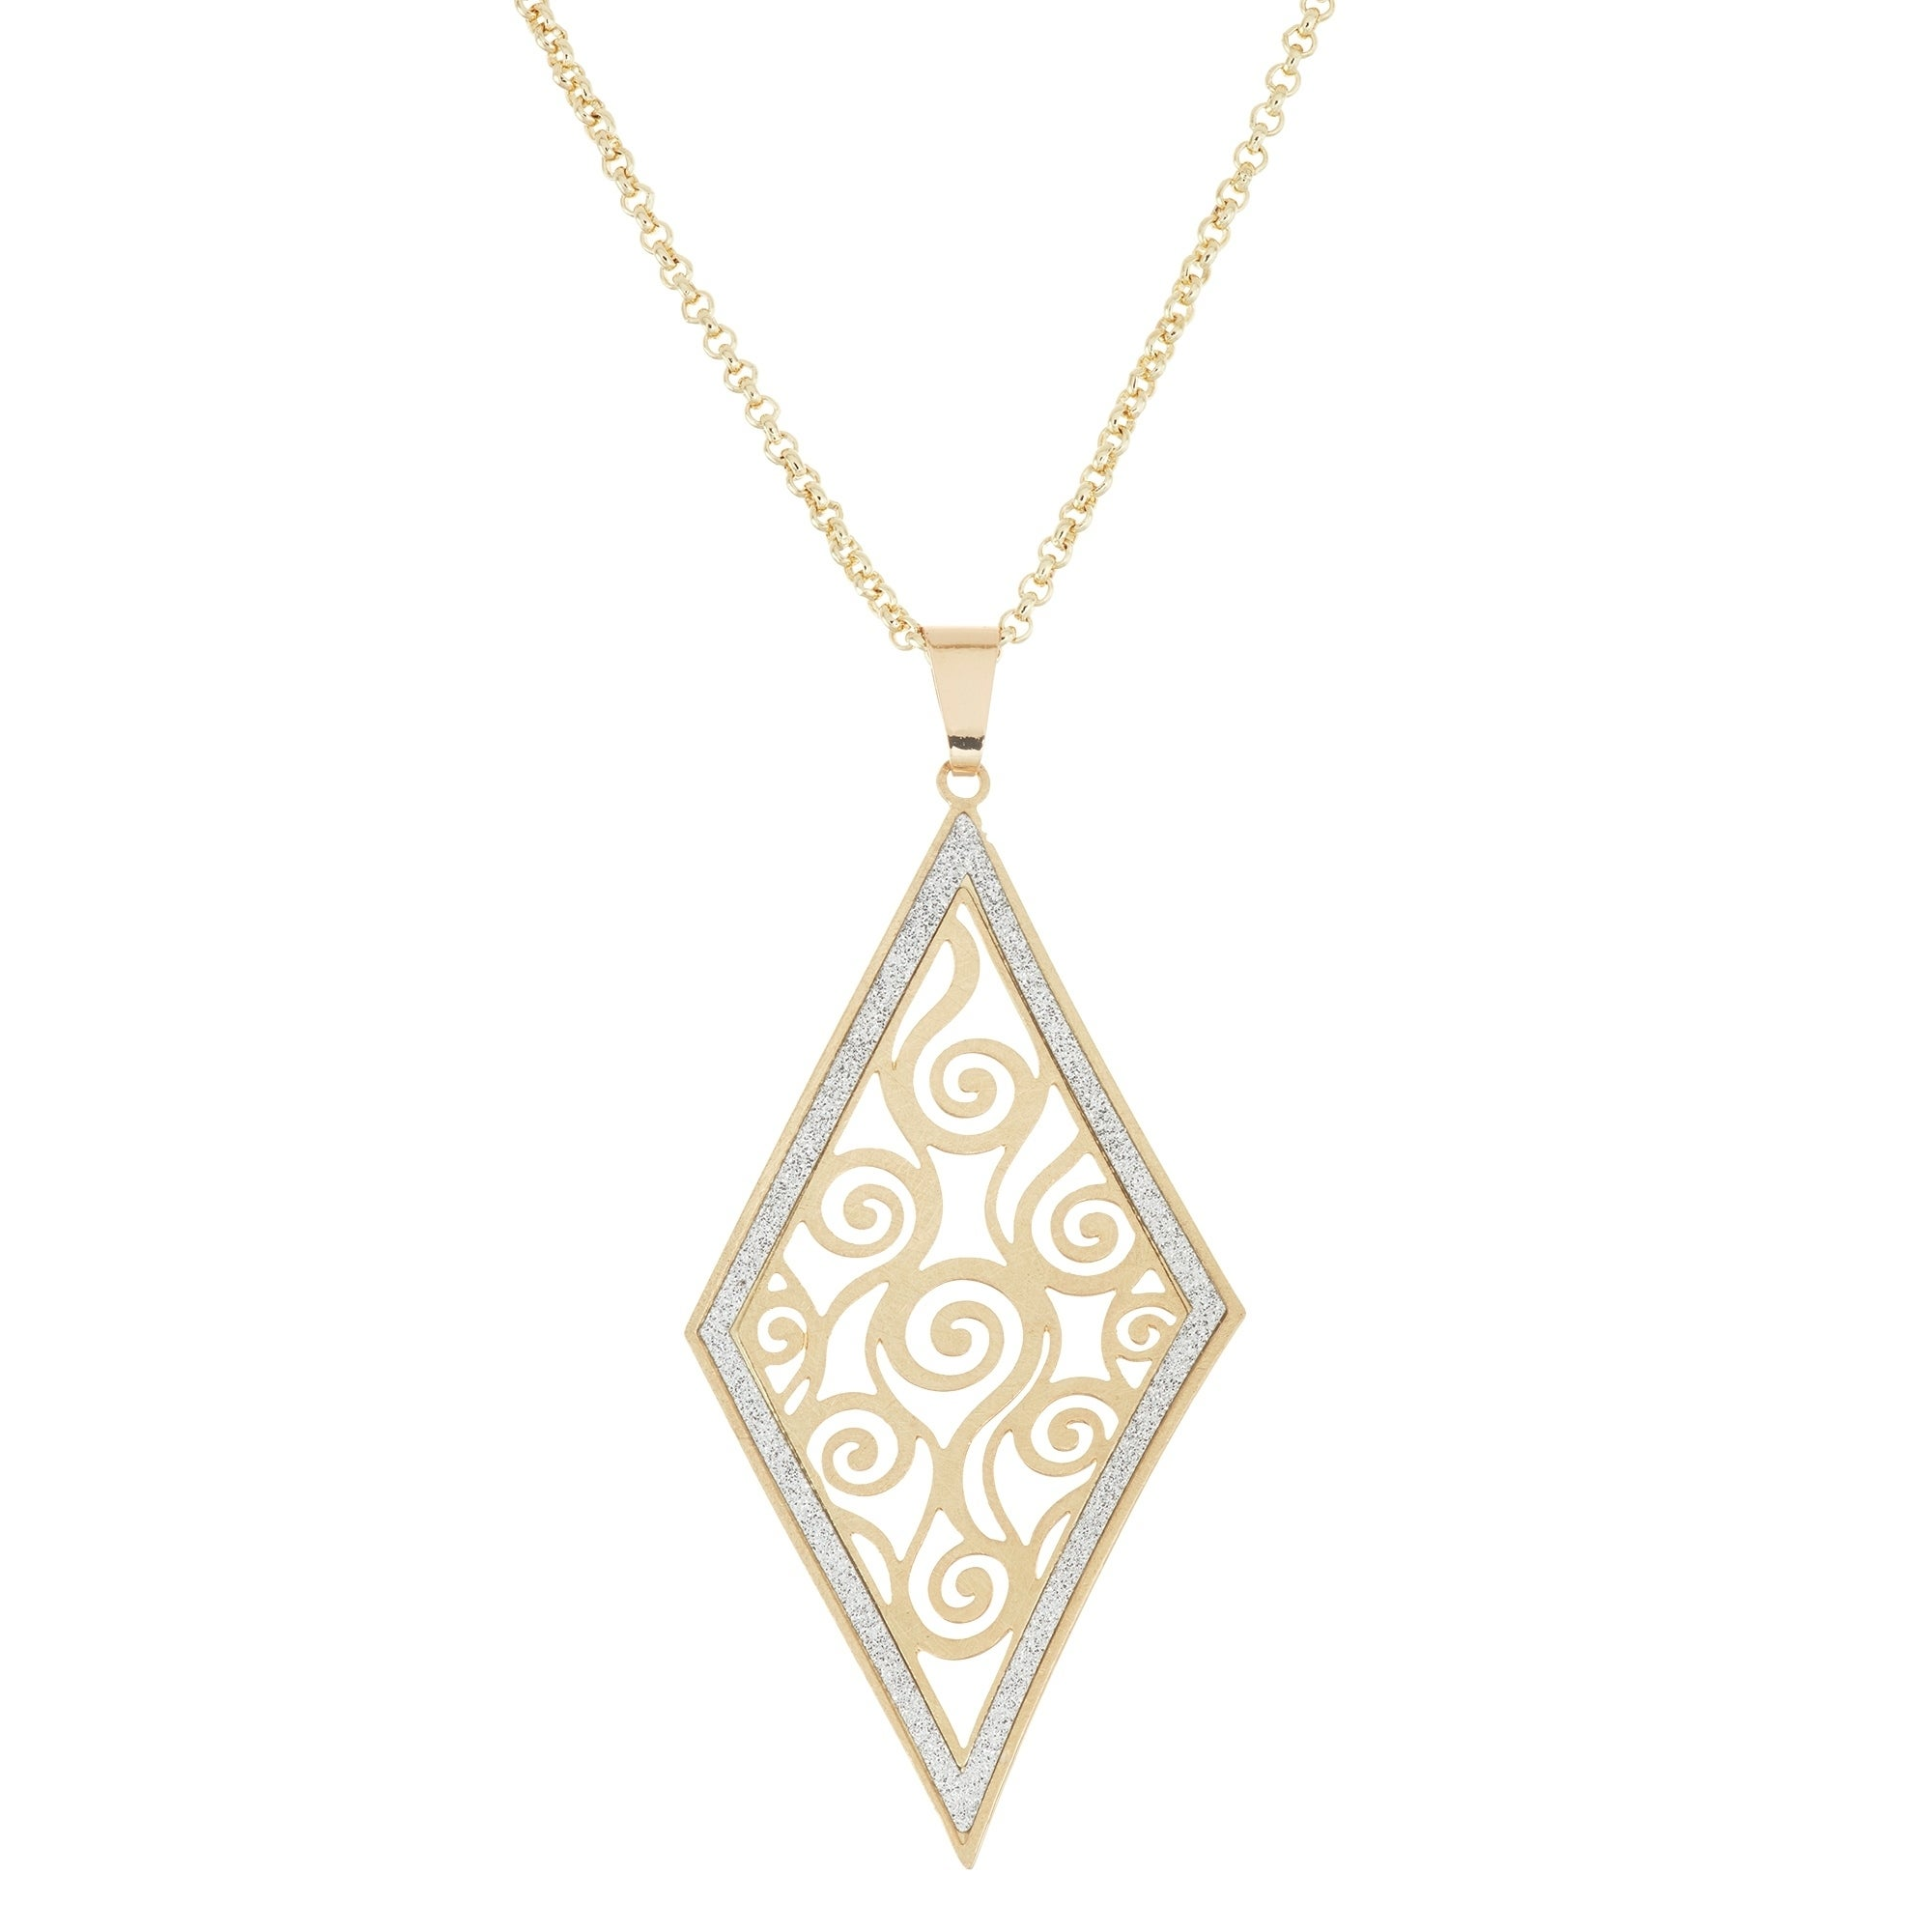 Isla simone 14k gold plated swirl cut out diamond shaped pendant isla simone 14k gold plated swirl cut out diamond shaped pendant necklace with sparkle finish free shipping on orders over 45 overstock 24302719 aloadofball Images